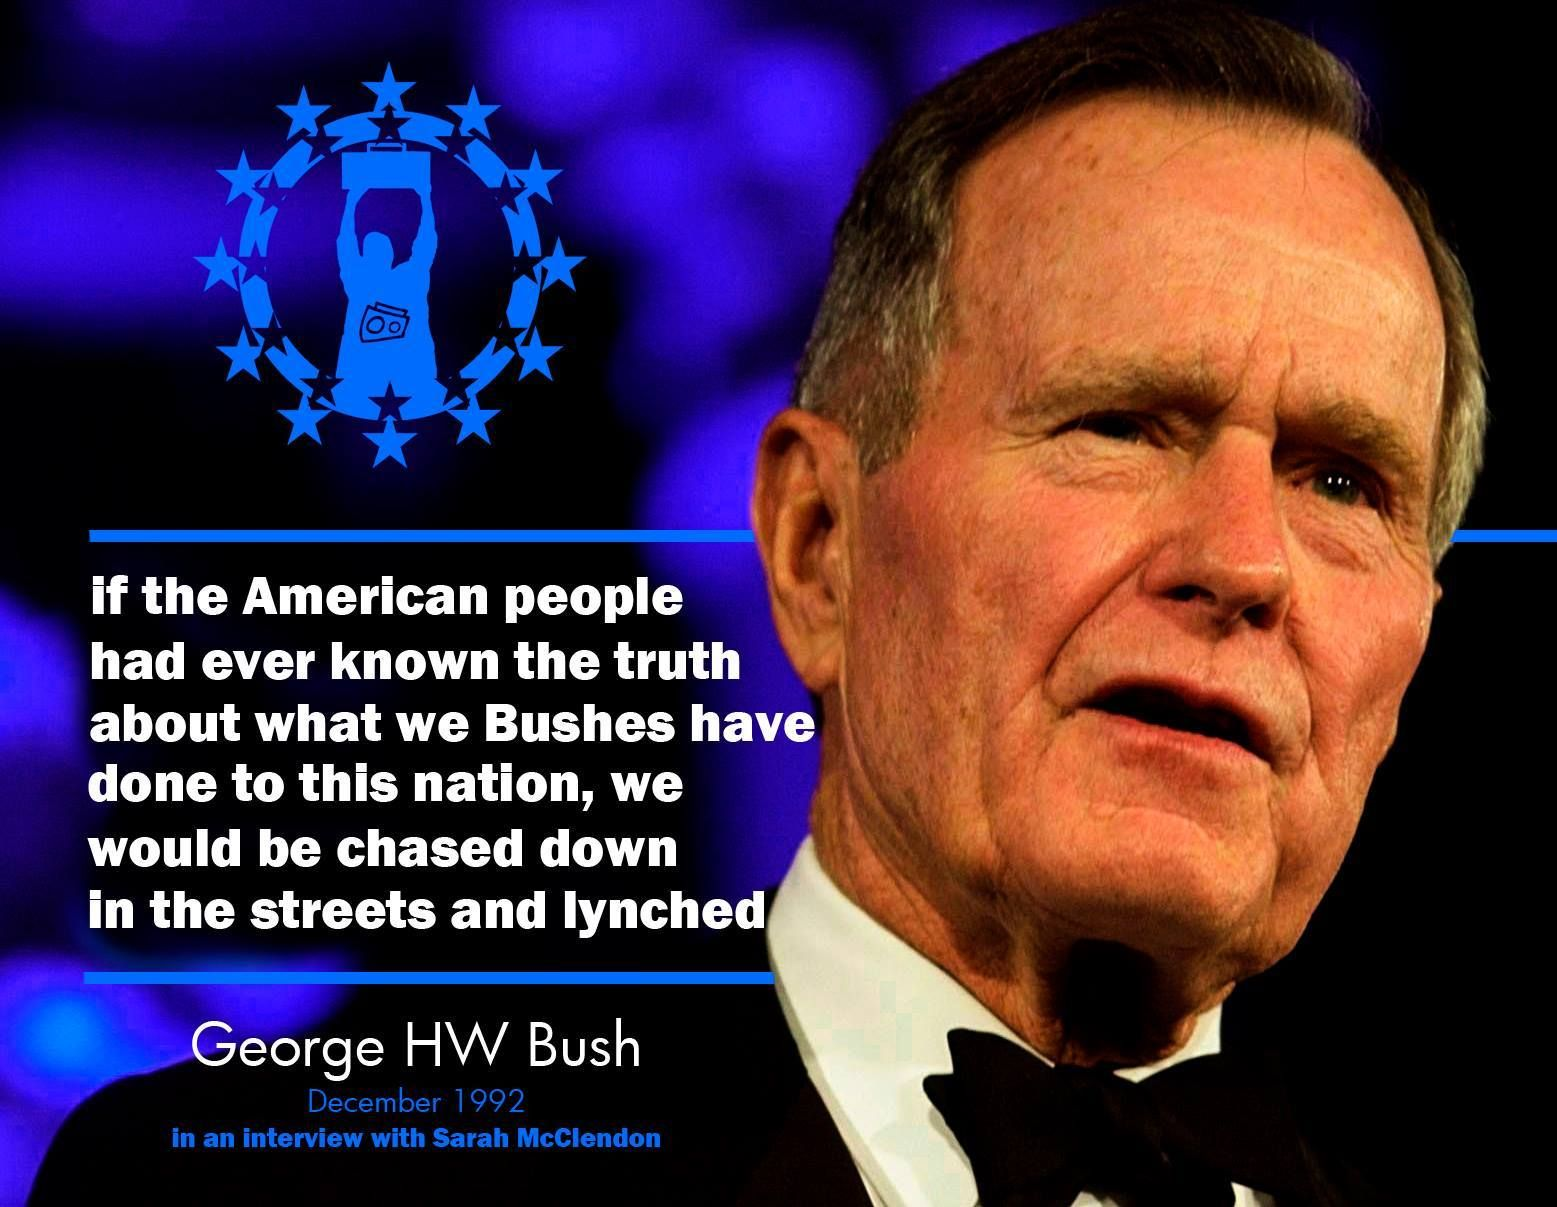 Jeb Bush Quotes Free And Equal Like This Page · February 28 Prescott Bush Father